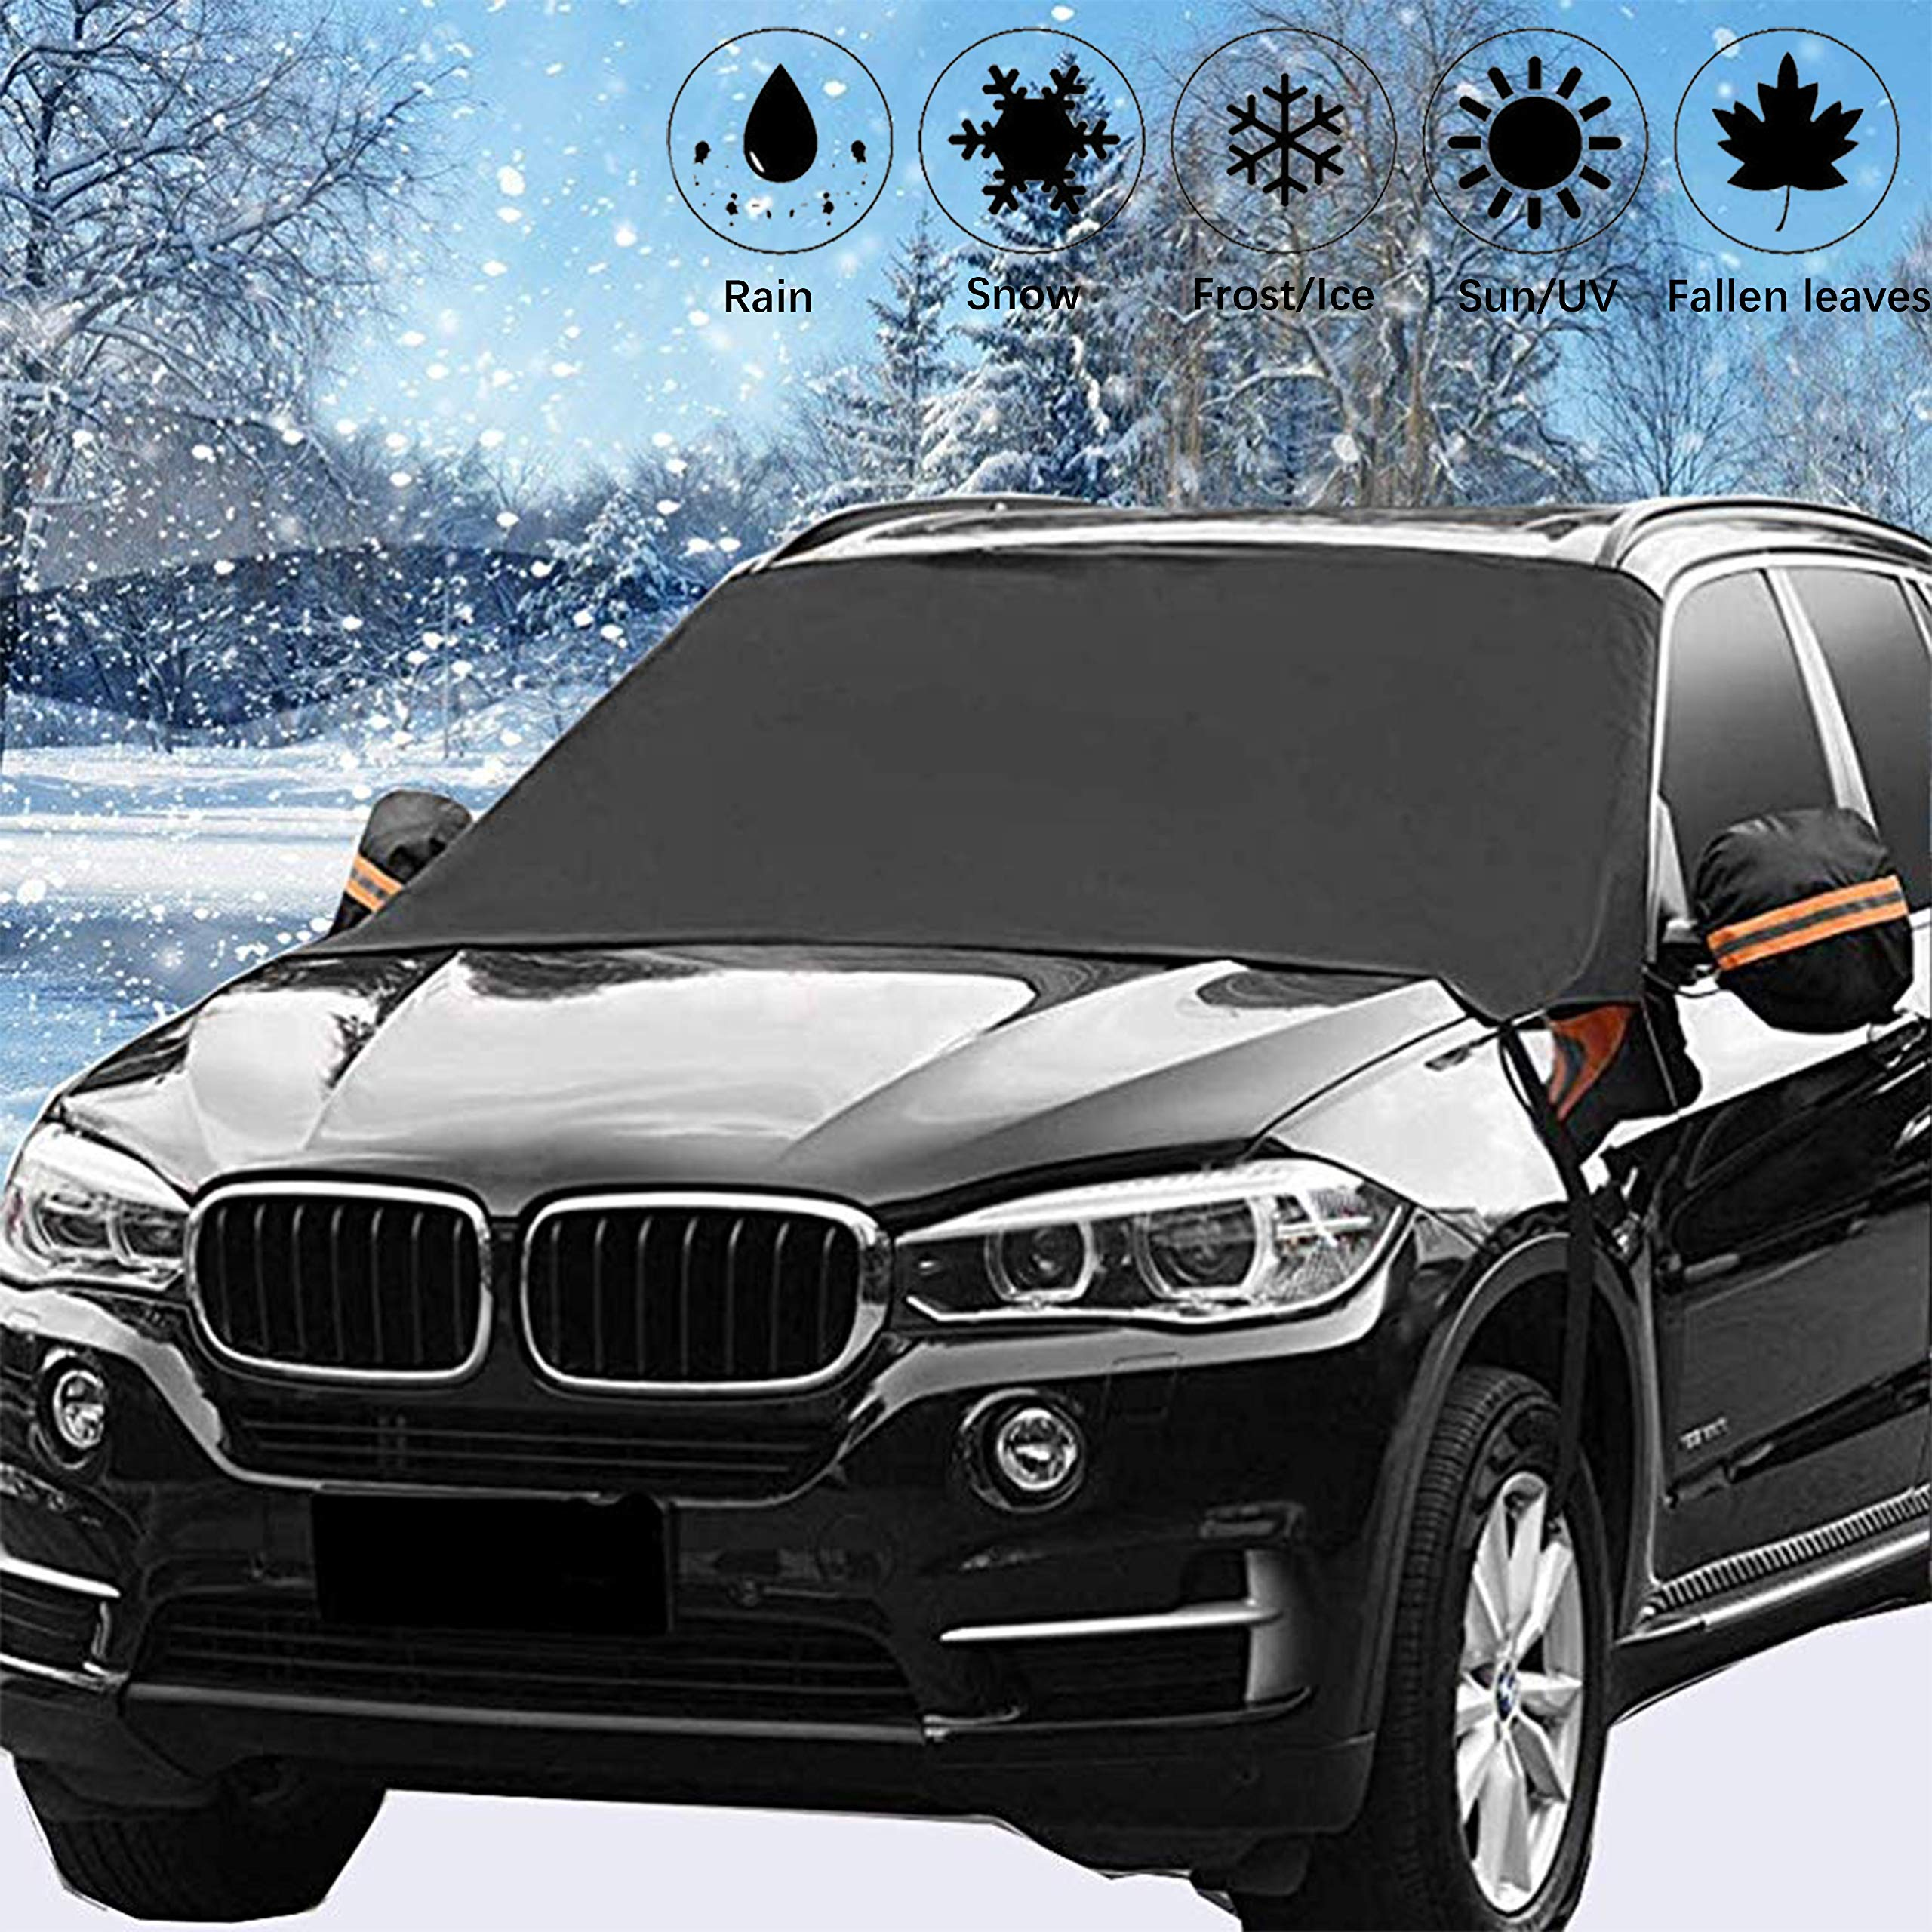 Frost /& Snow Off Fits Most of Car /& SUVs with Mirror Protective Covers 58x 38 Thickened Windshield Snow Cover /& Sun Shade Protector Keeps Ice PowerTiger Frost /& Snow Off Fits Most of Car /& SUVs 58x 38 PowerTiger 4333187111